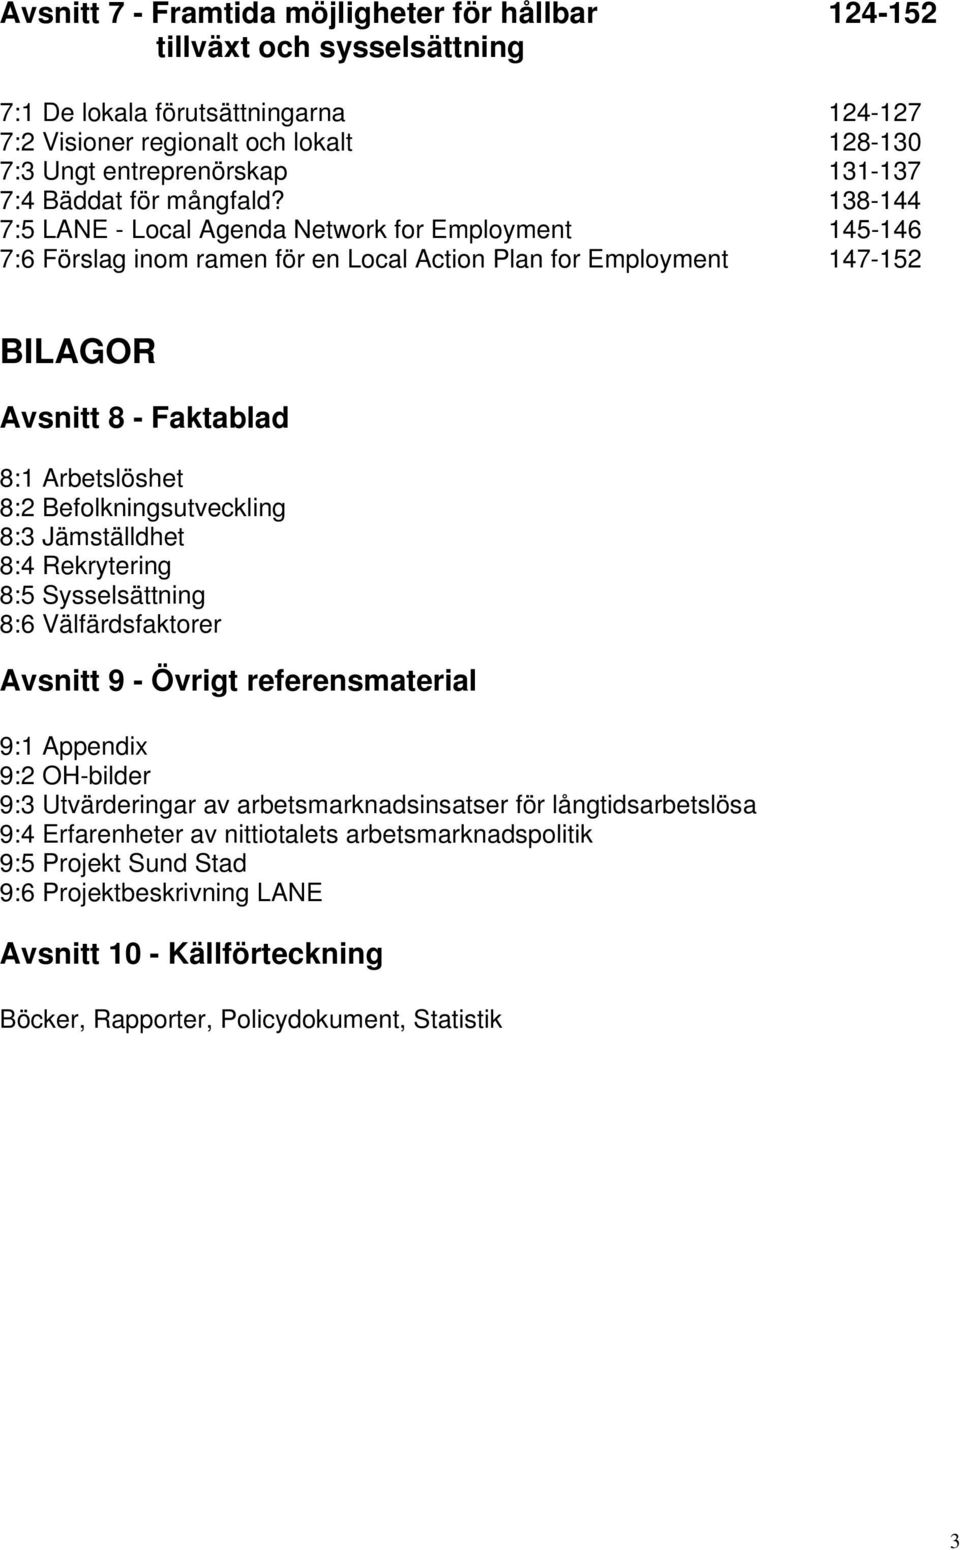 138-144 7:5 LANE - Local Agenda Network for Employment 145-146 7:6 Förslag inom ramen för en Local Action Plan for Employment 147-152 BILAGOR Avsnitt 8 - Faktablad 8:1 Arbetslöshet 8:2